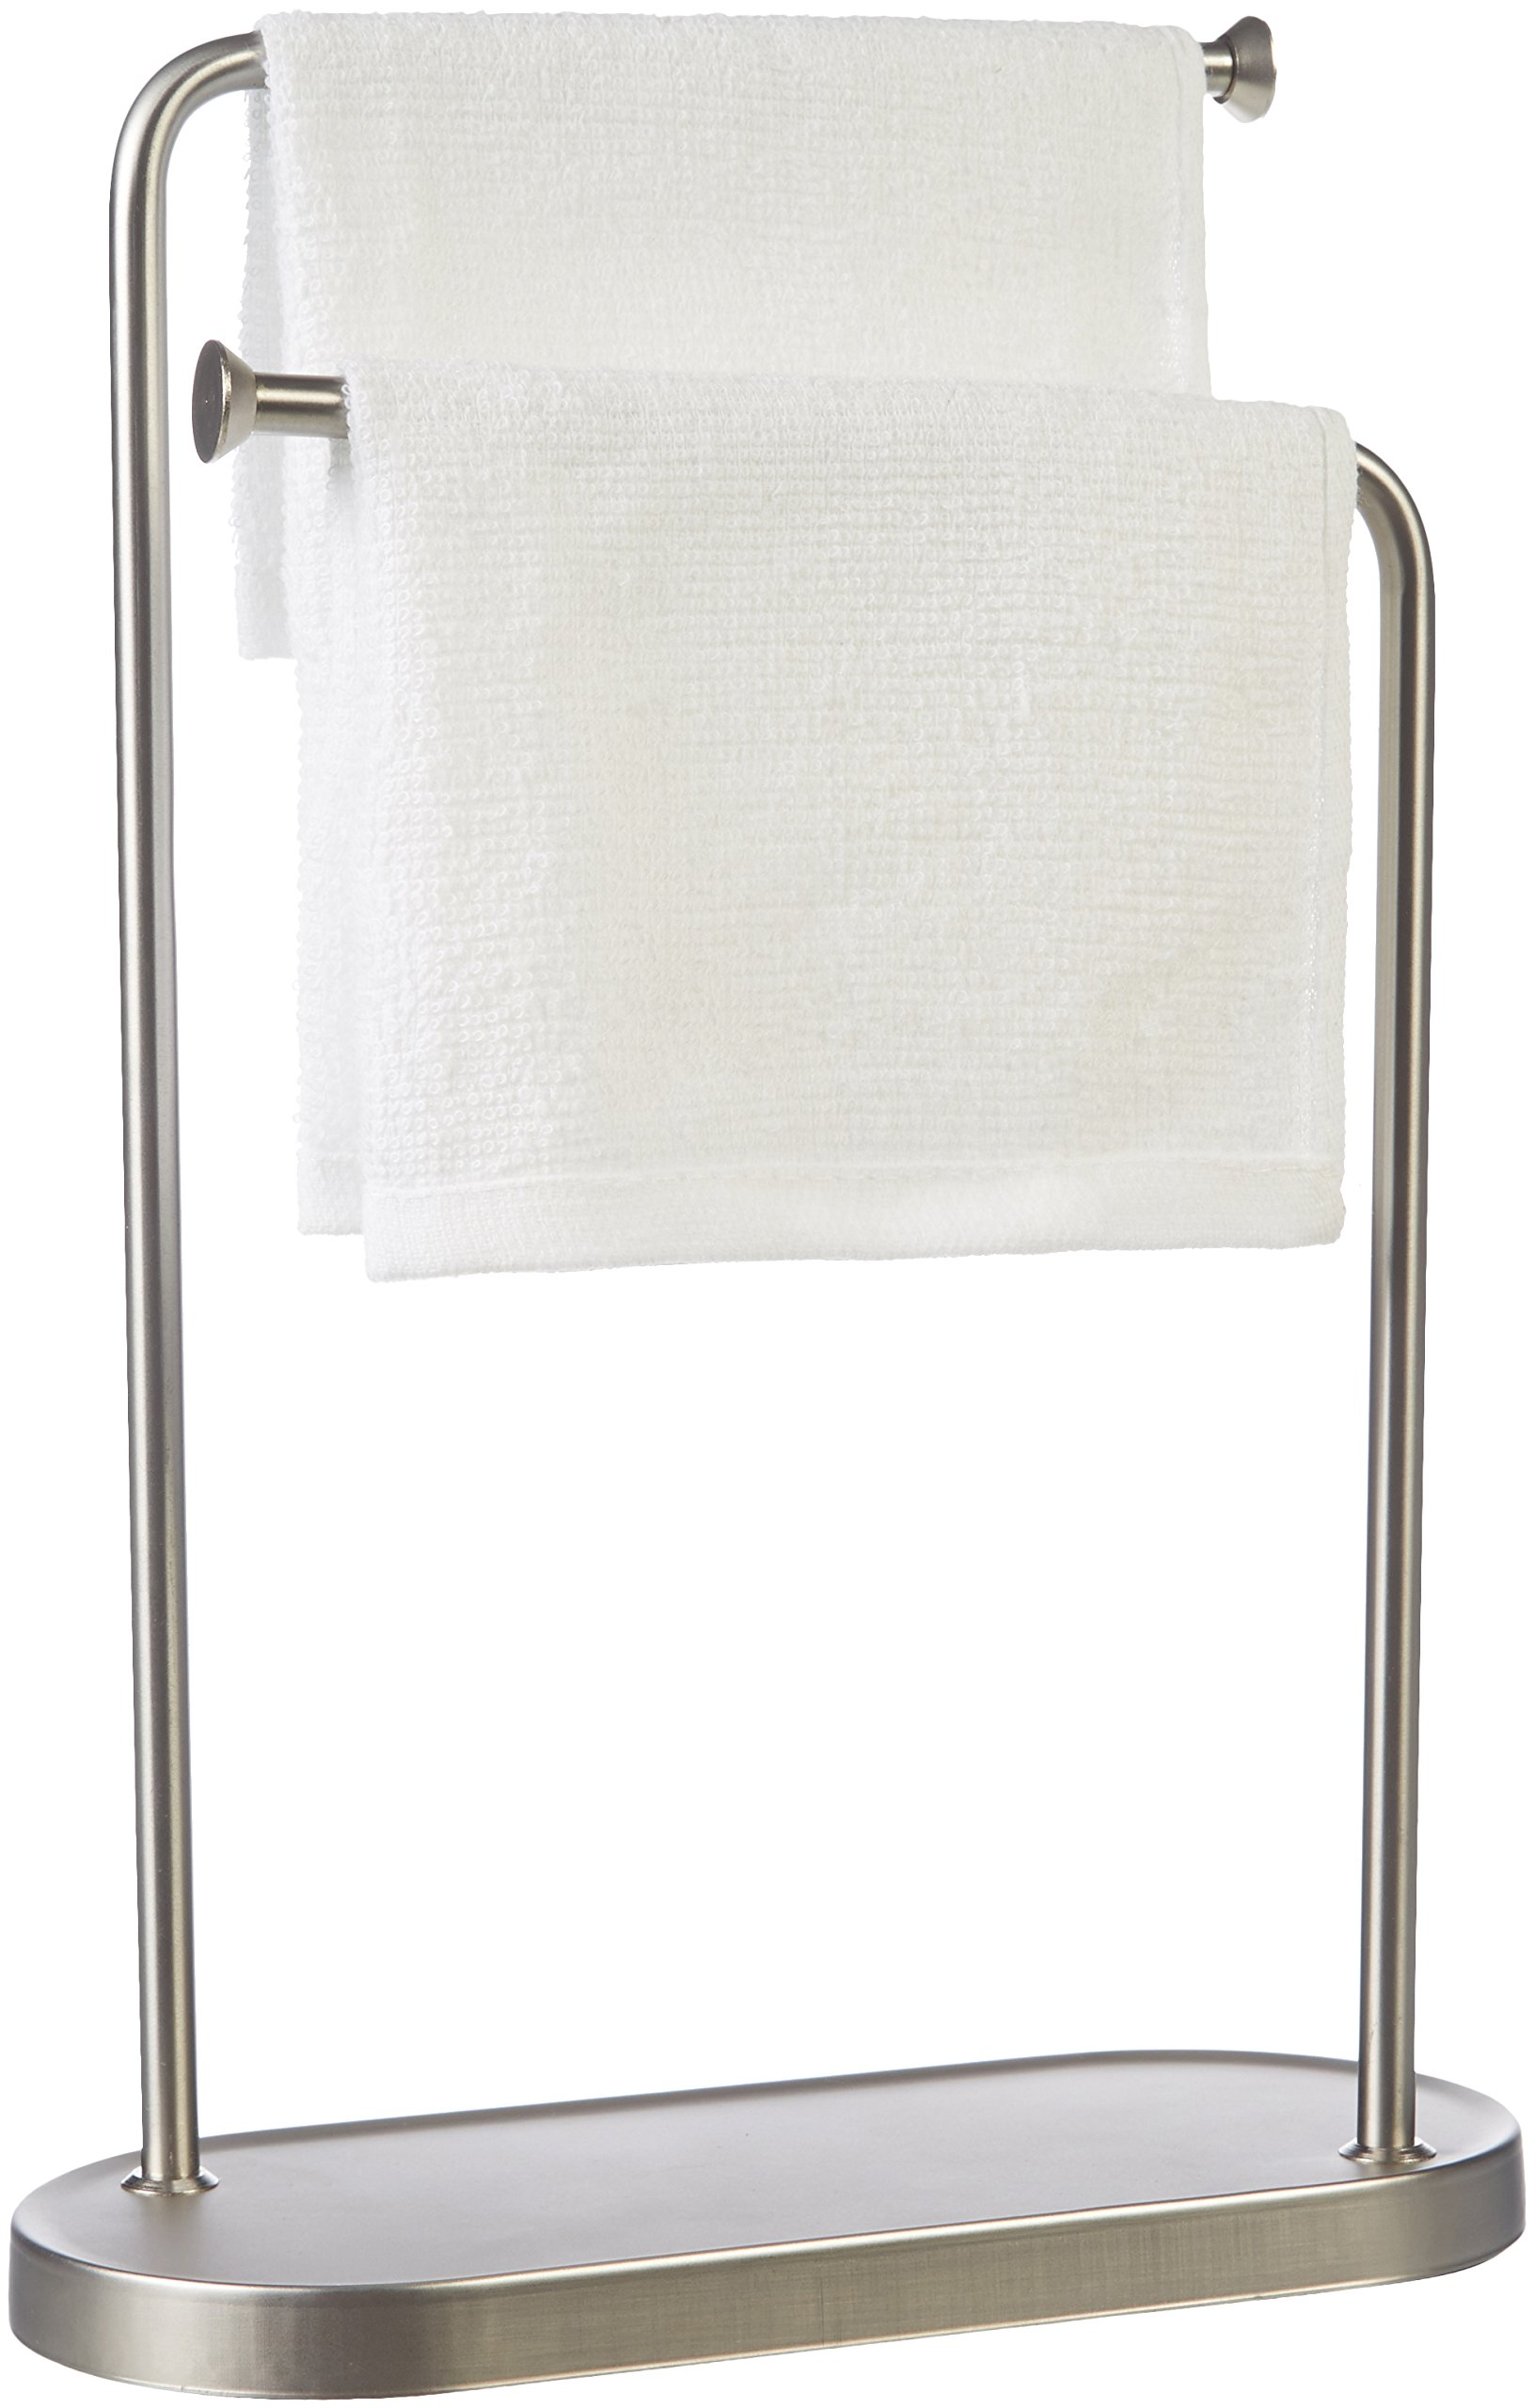 Double-L Hand Towel Stand - towel